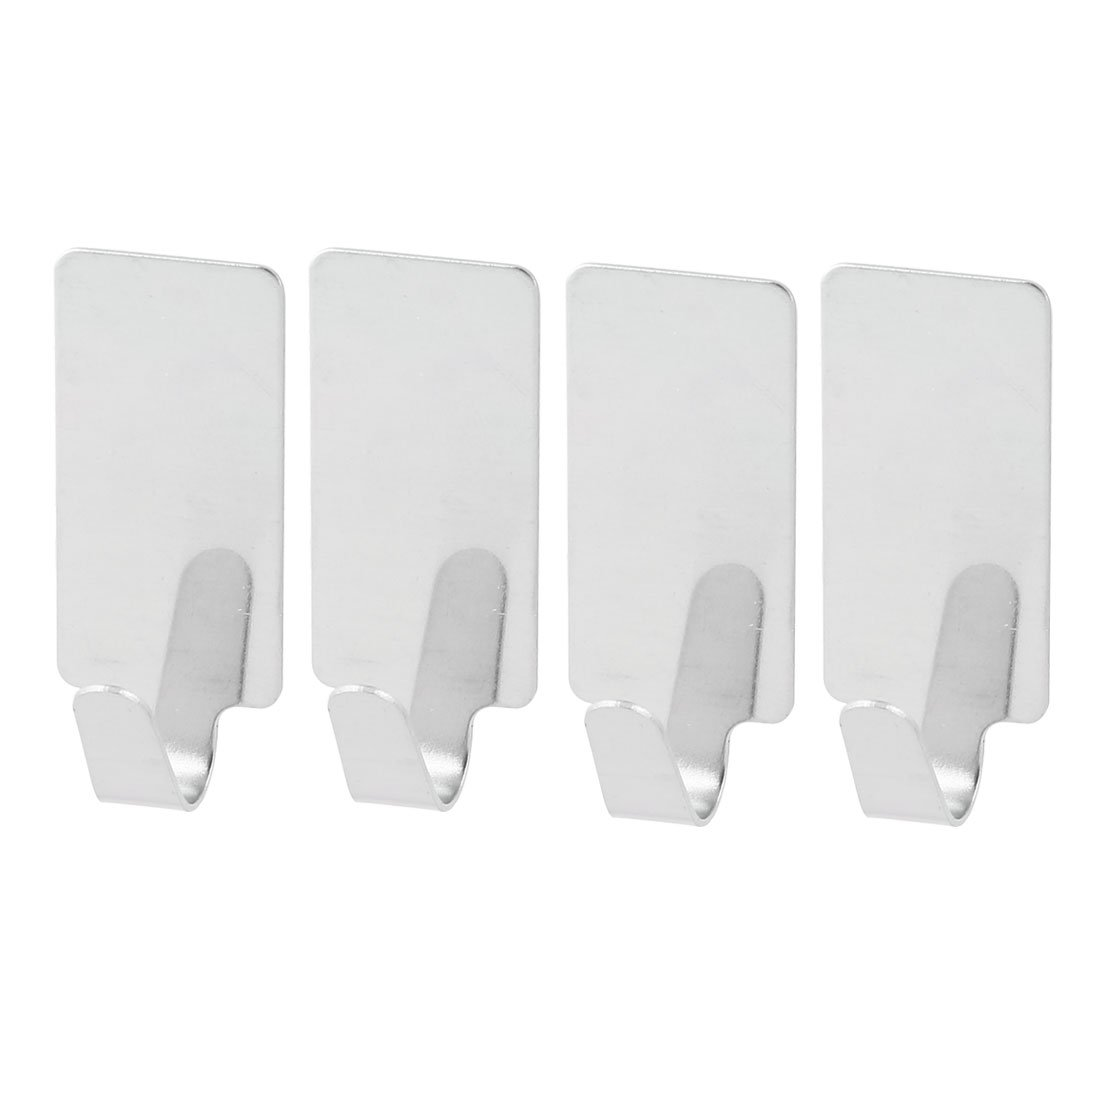 uxcell Stainless Steel Home Wall Self-adhesive Towel Cap Hanging Hook Hanger 4pcs Silver Tone durable service